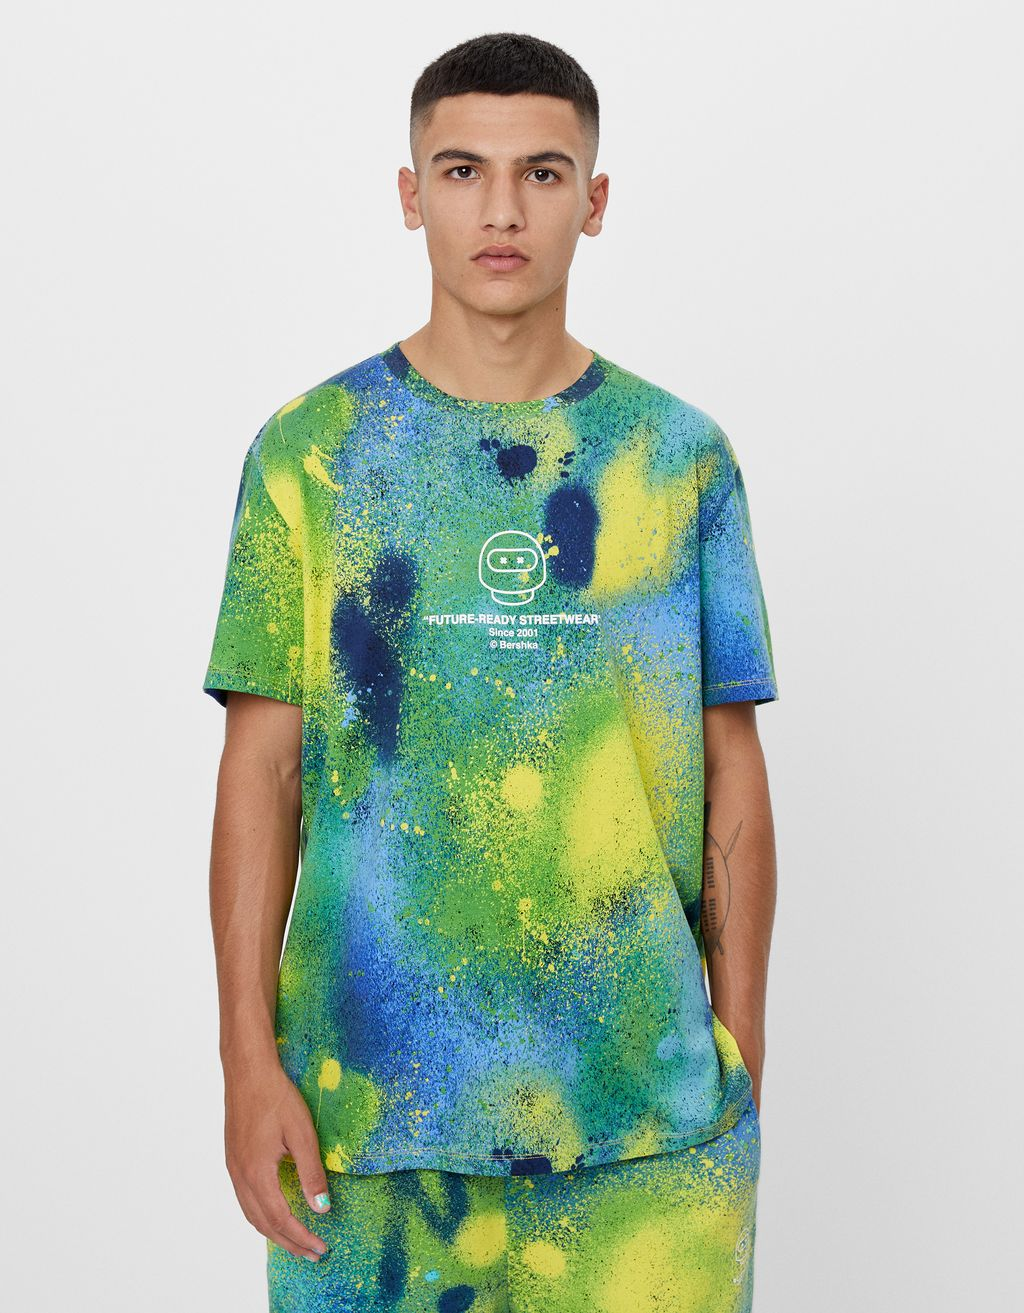 Camiseta FUTURE-READY pintura